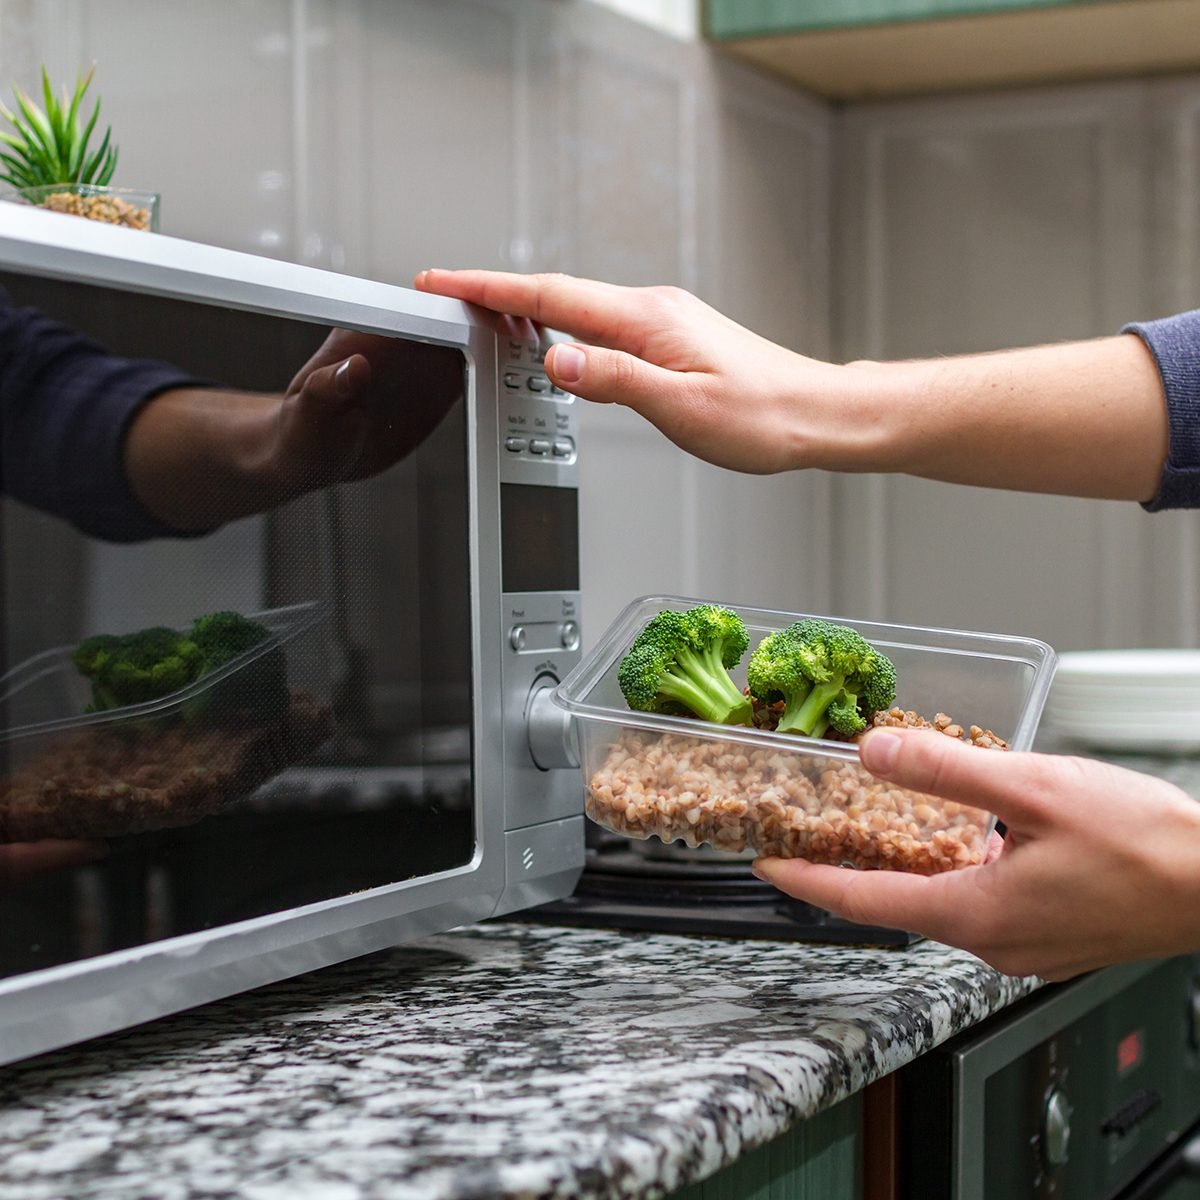 Using the microwave oven to heating food.